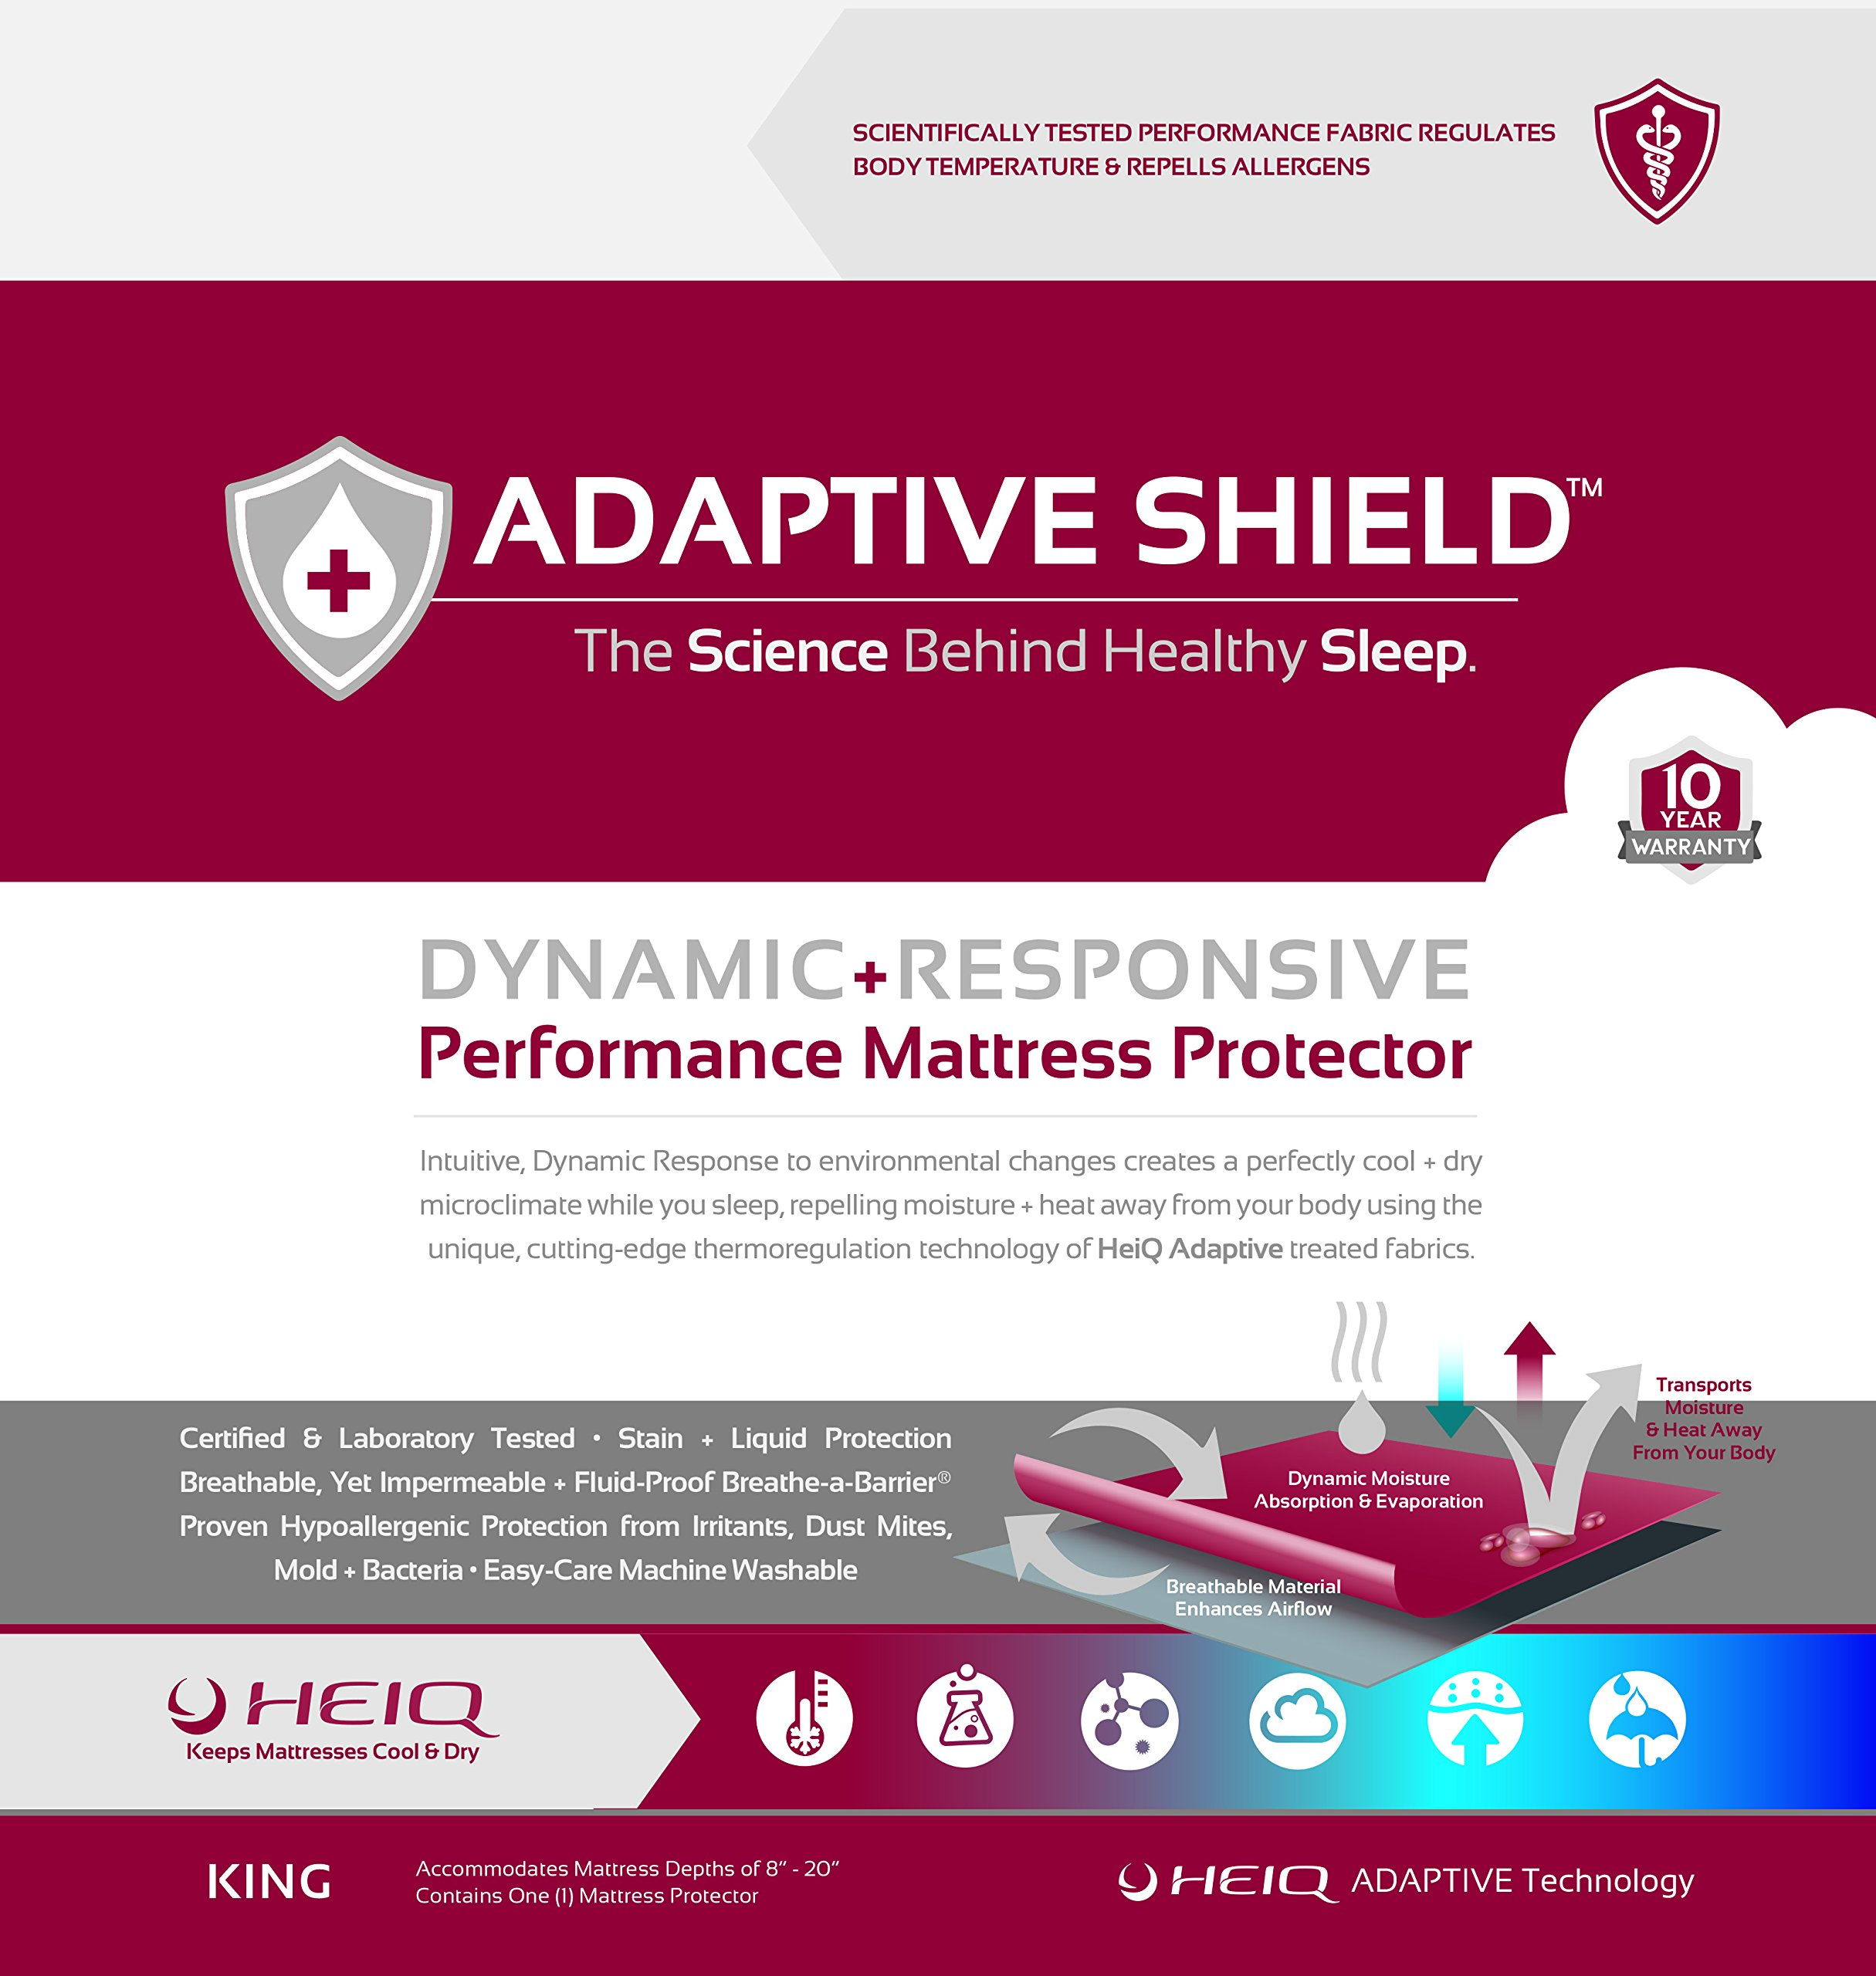 Adaptive Shield Premium Performance Mattress Protector - Lab Tested Allergy Free and Waterproof, Vinyl Free Noiseless Sleep, Crinkle Free, Machine Washable, and Compatible with All Mattresses (King)